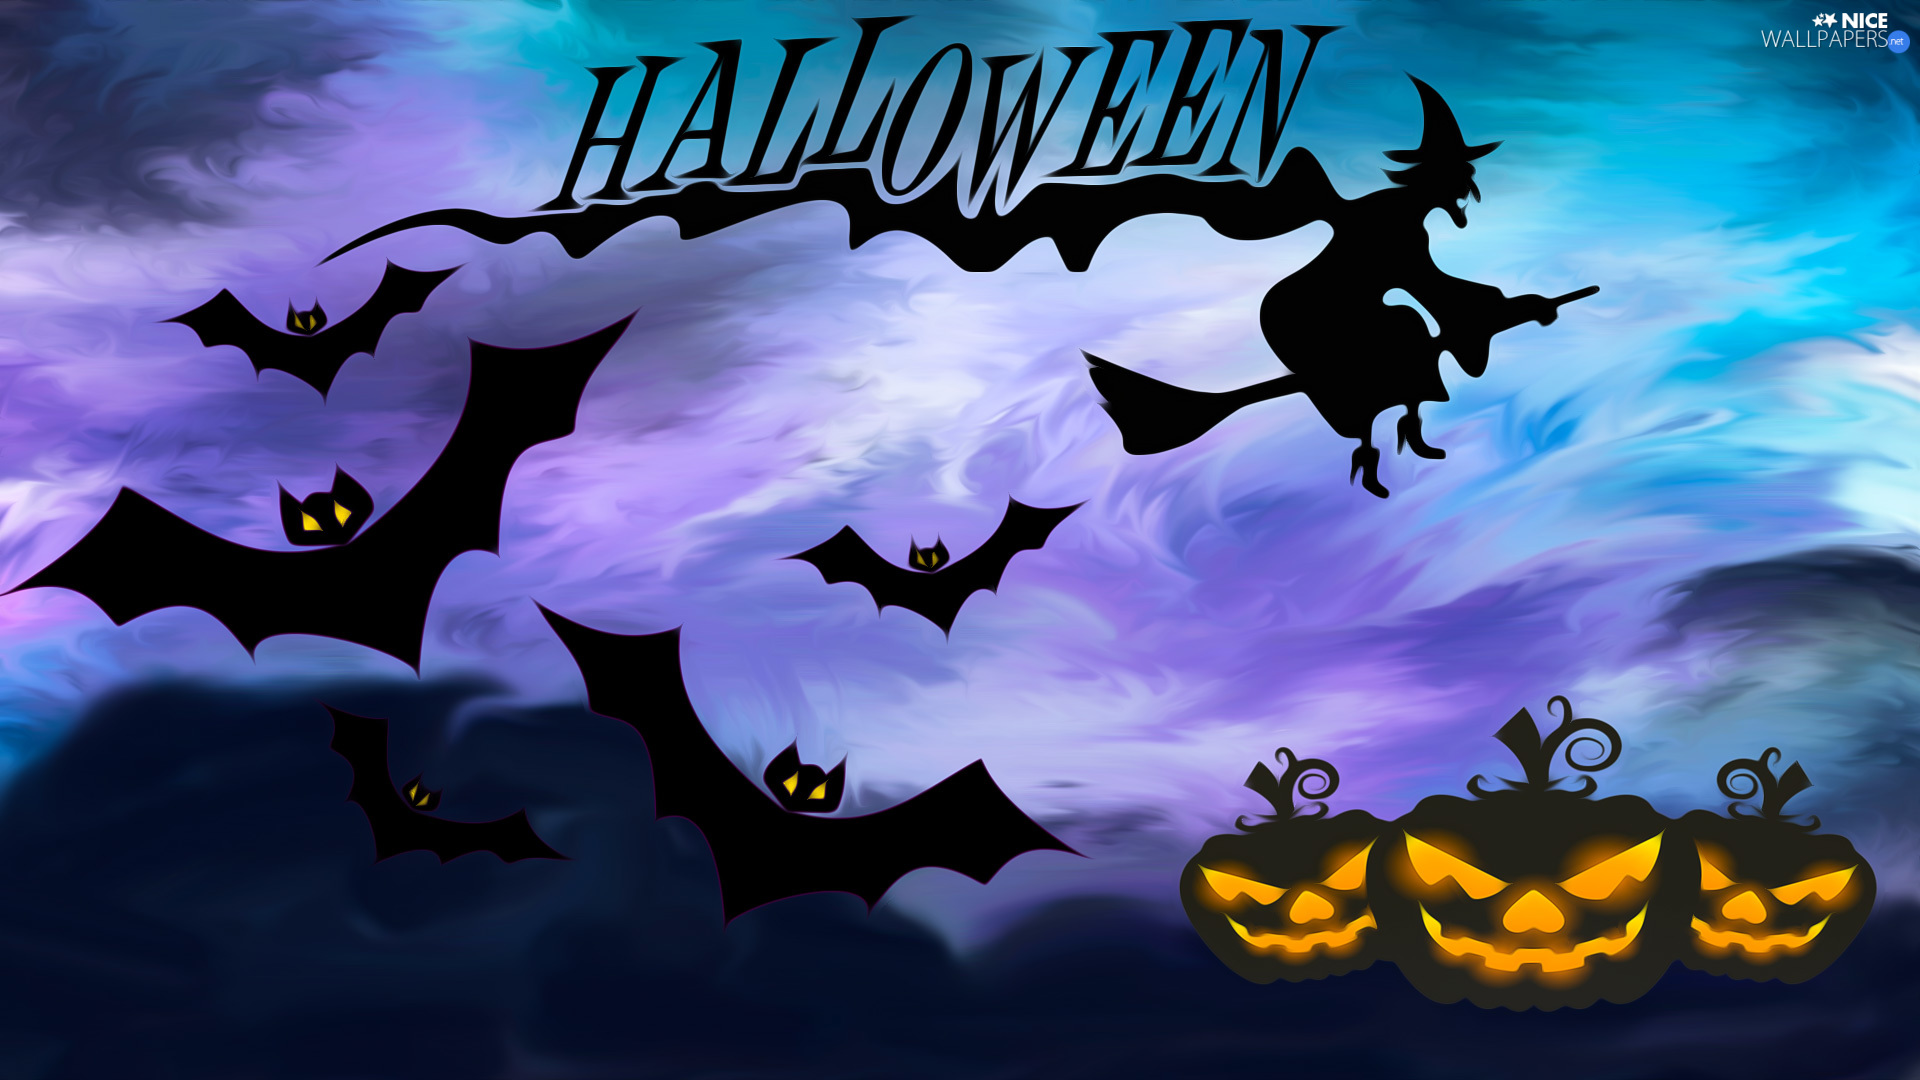 halloween, pumpkin, graphics, bats